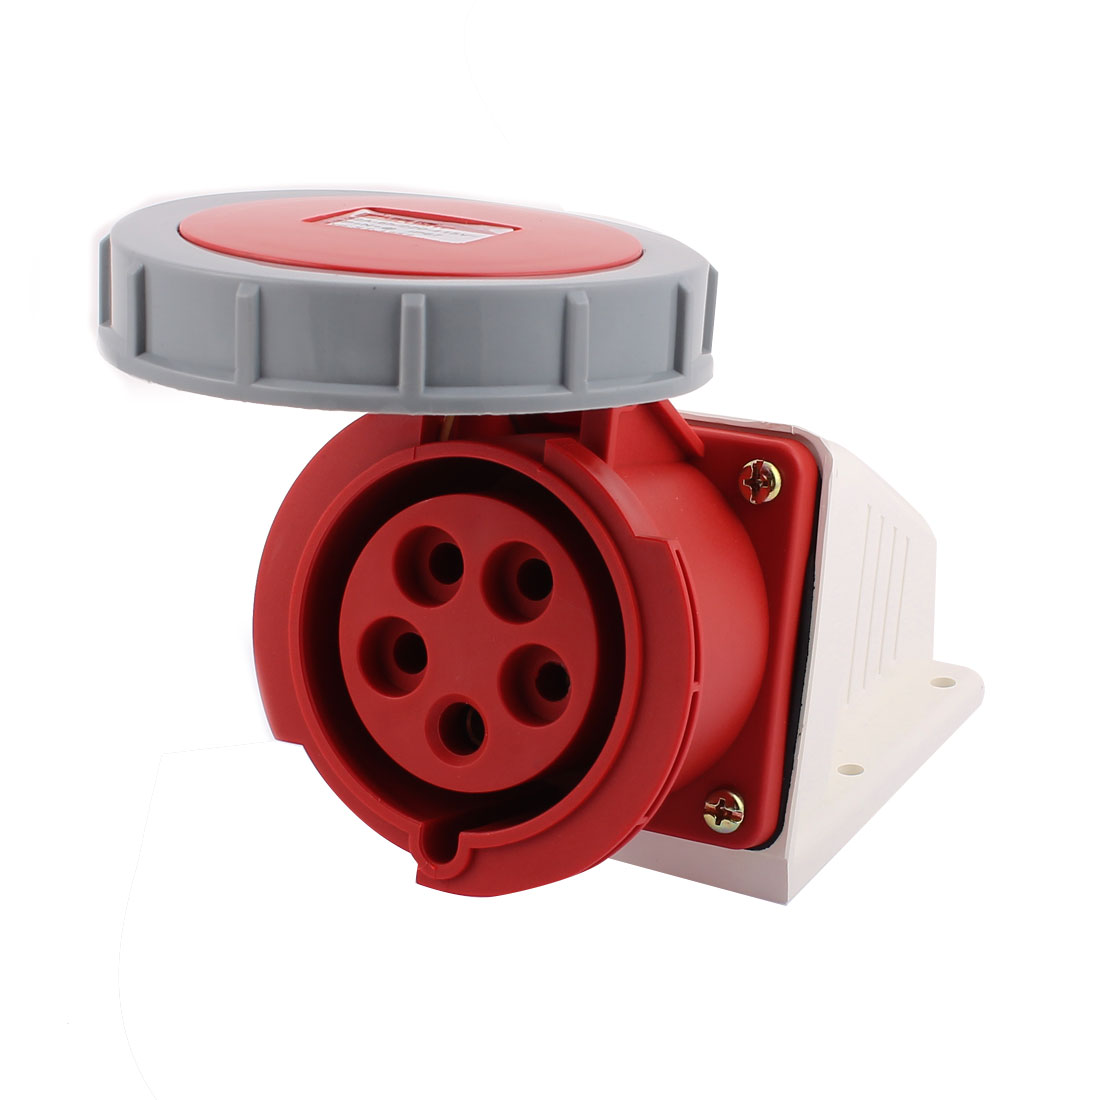 AC 220V-415V 32A IP67 3P+N+E 5P Female Industrial Caravan Socket